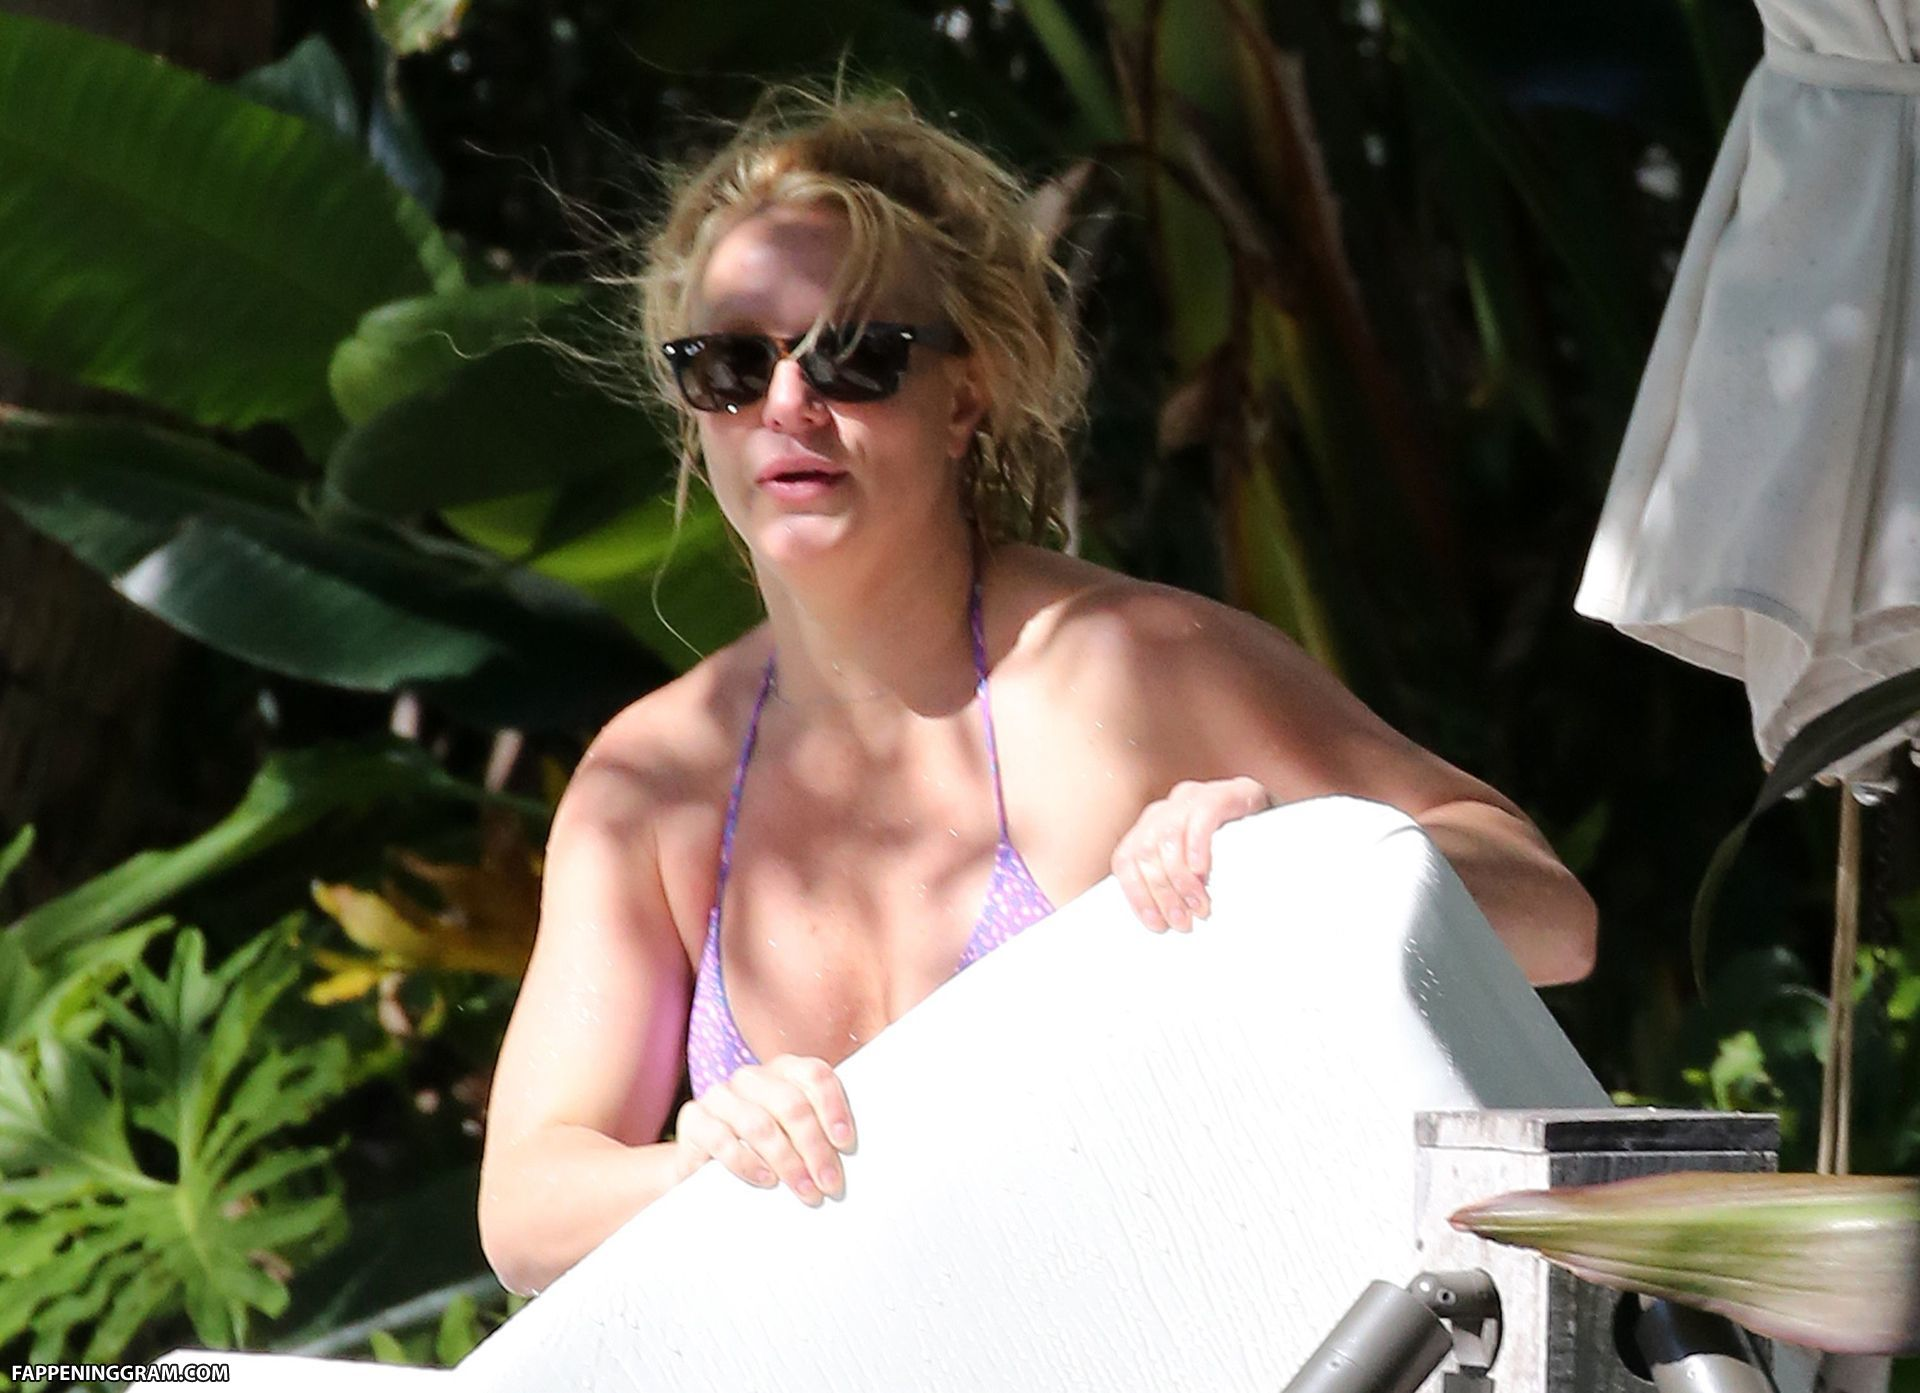 Britney Spears writhes around in sports bra and shorts for